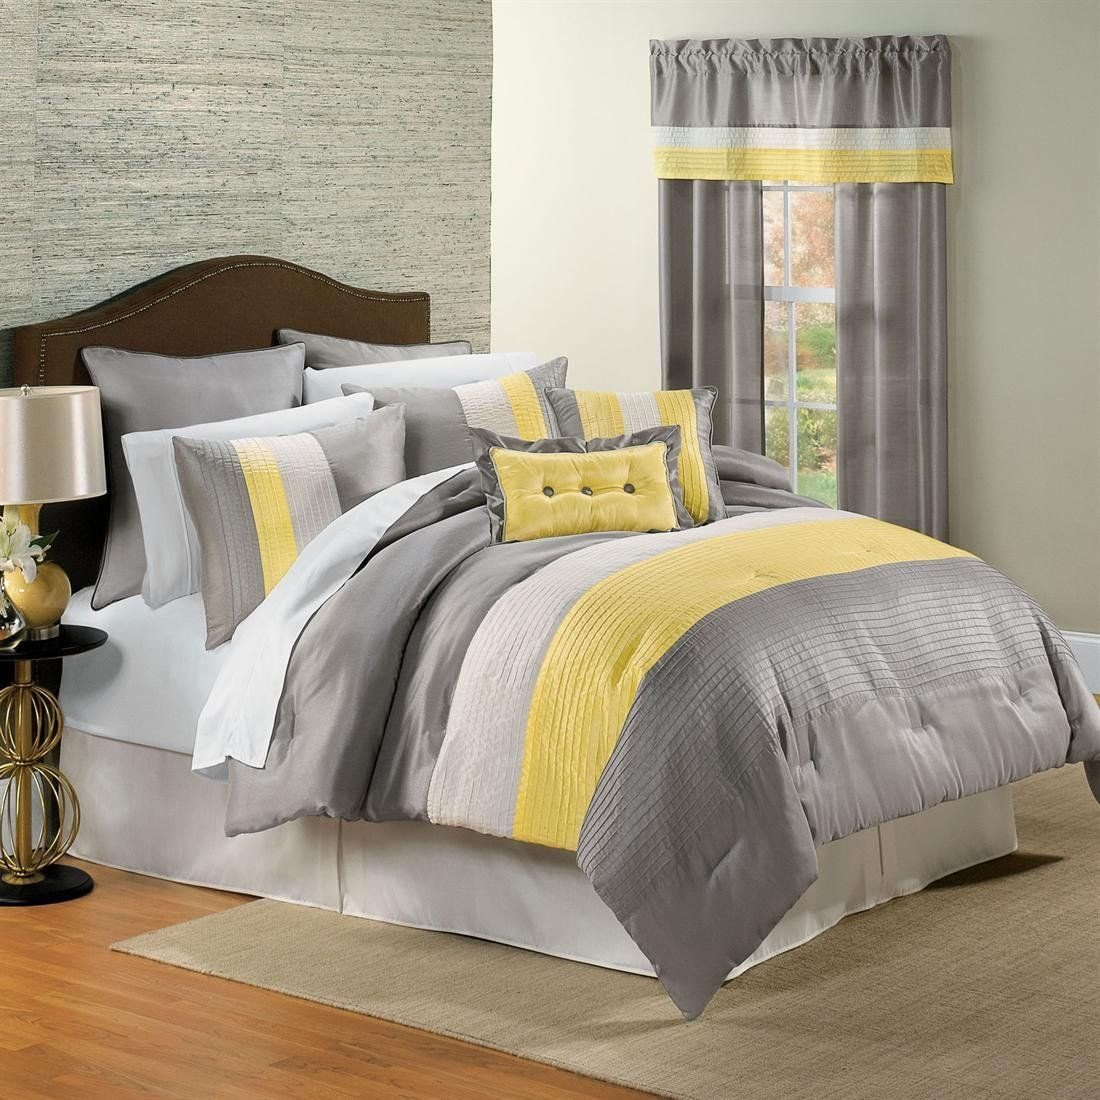 Grey and Yellow Bedroom Decor Inspirational Yellow and Gray Bedding that Will Make Your Bedroom Pop